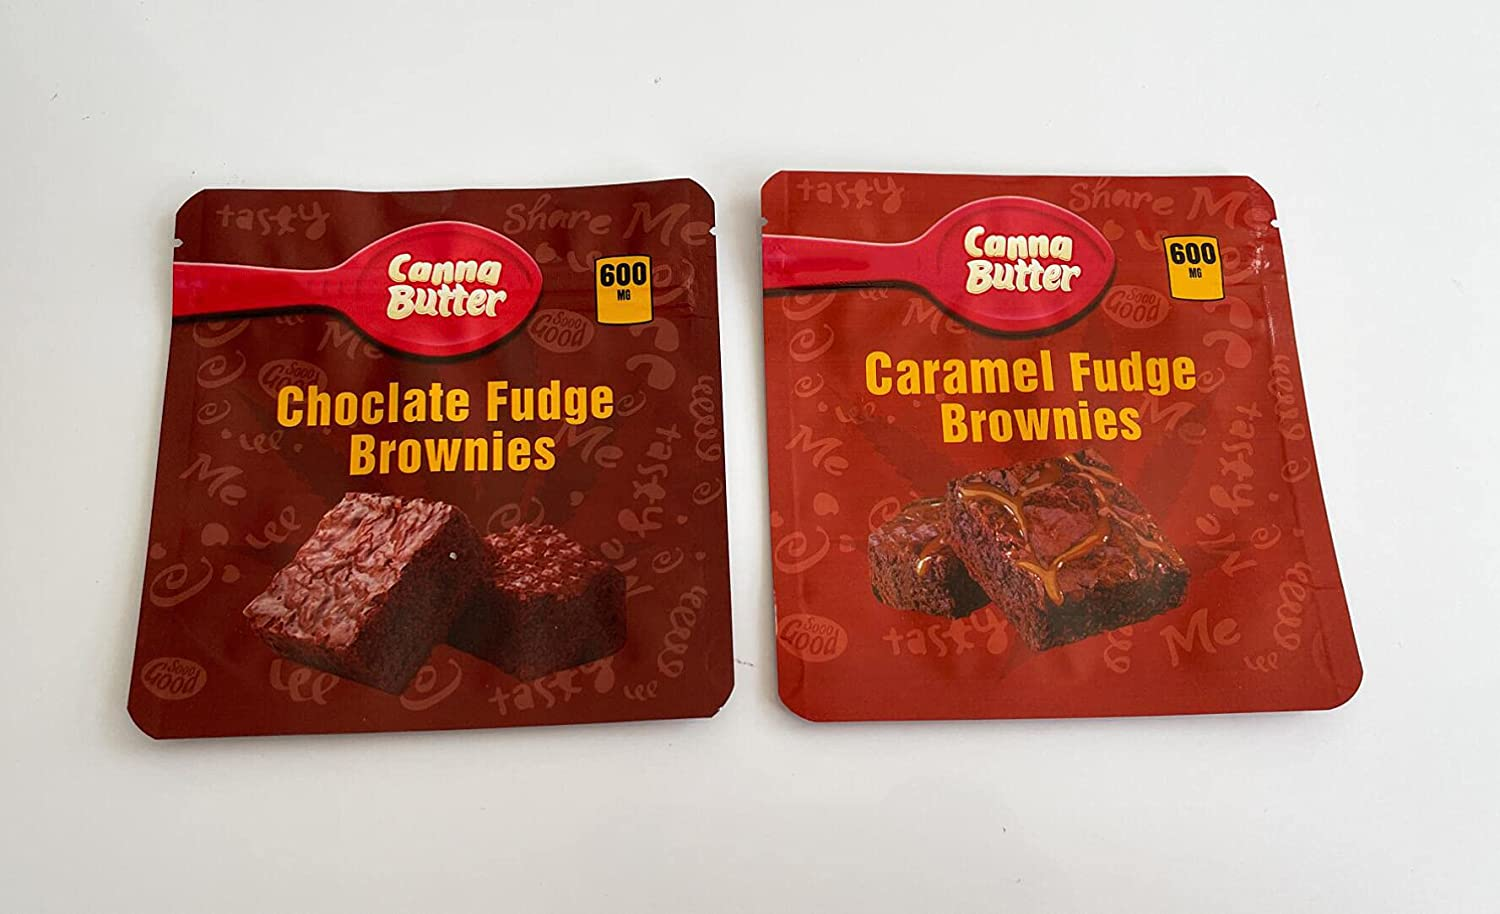 100 Sale item PCS Edible Packaging 2 Mix Fud Choclate Butter Caramel New product Canna